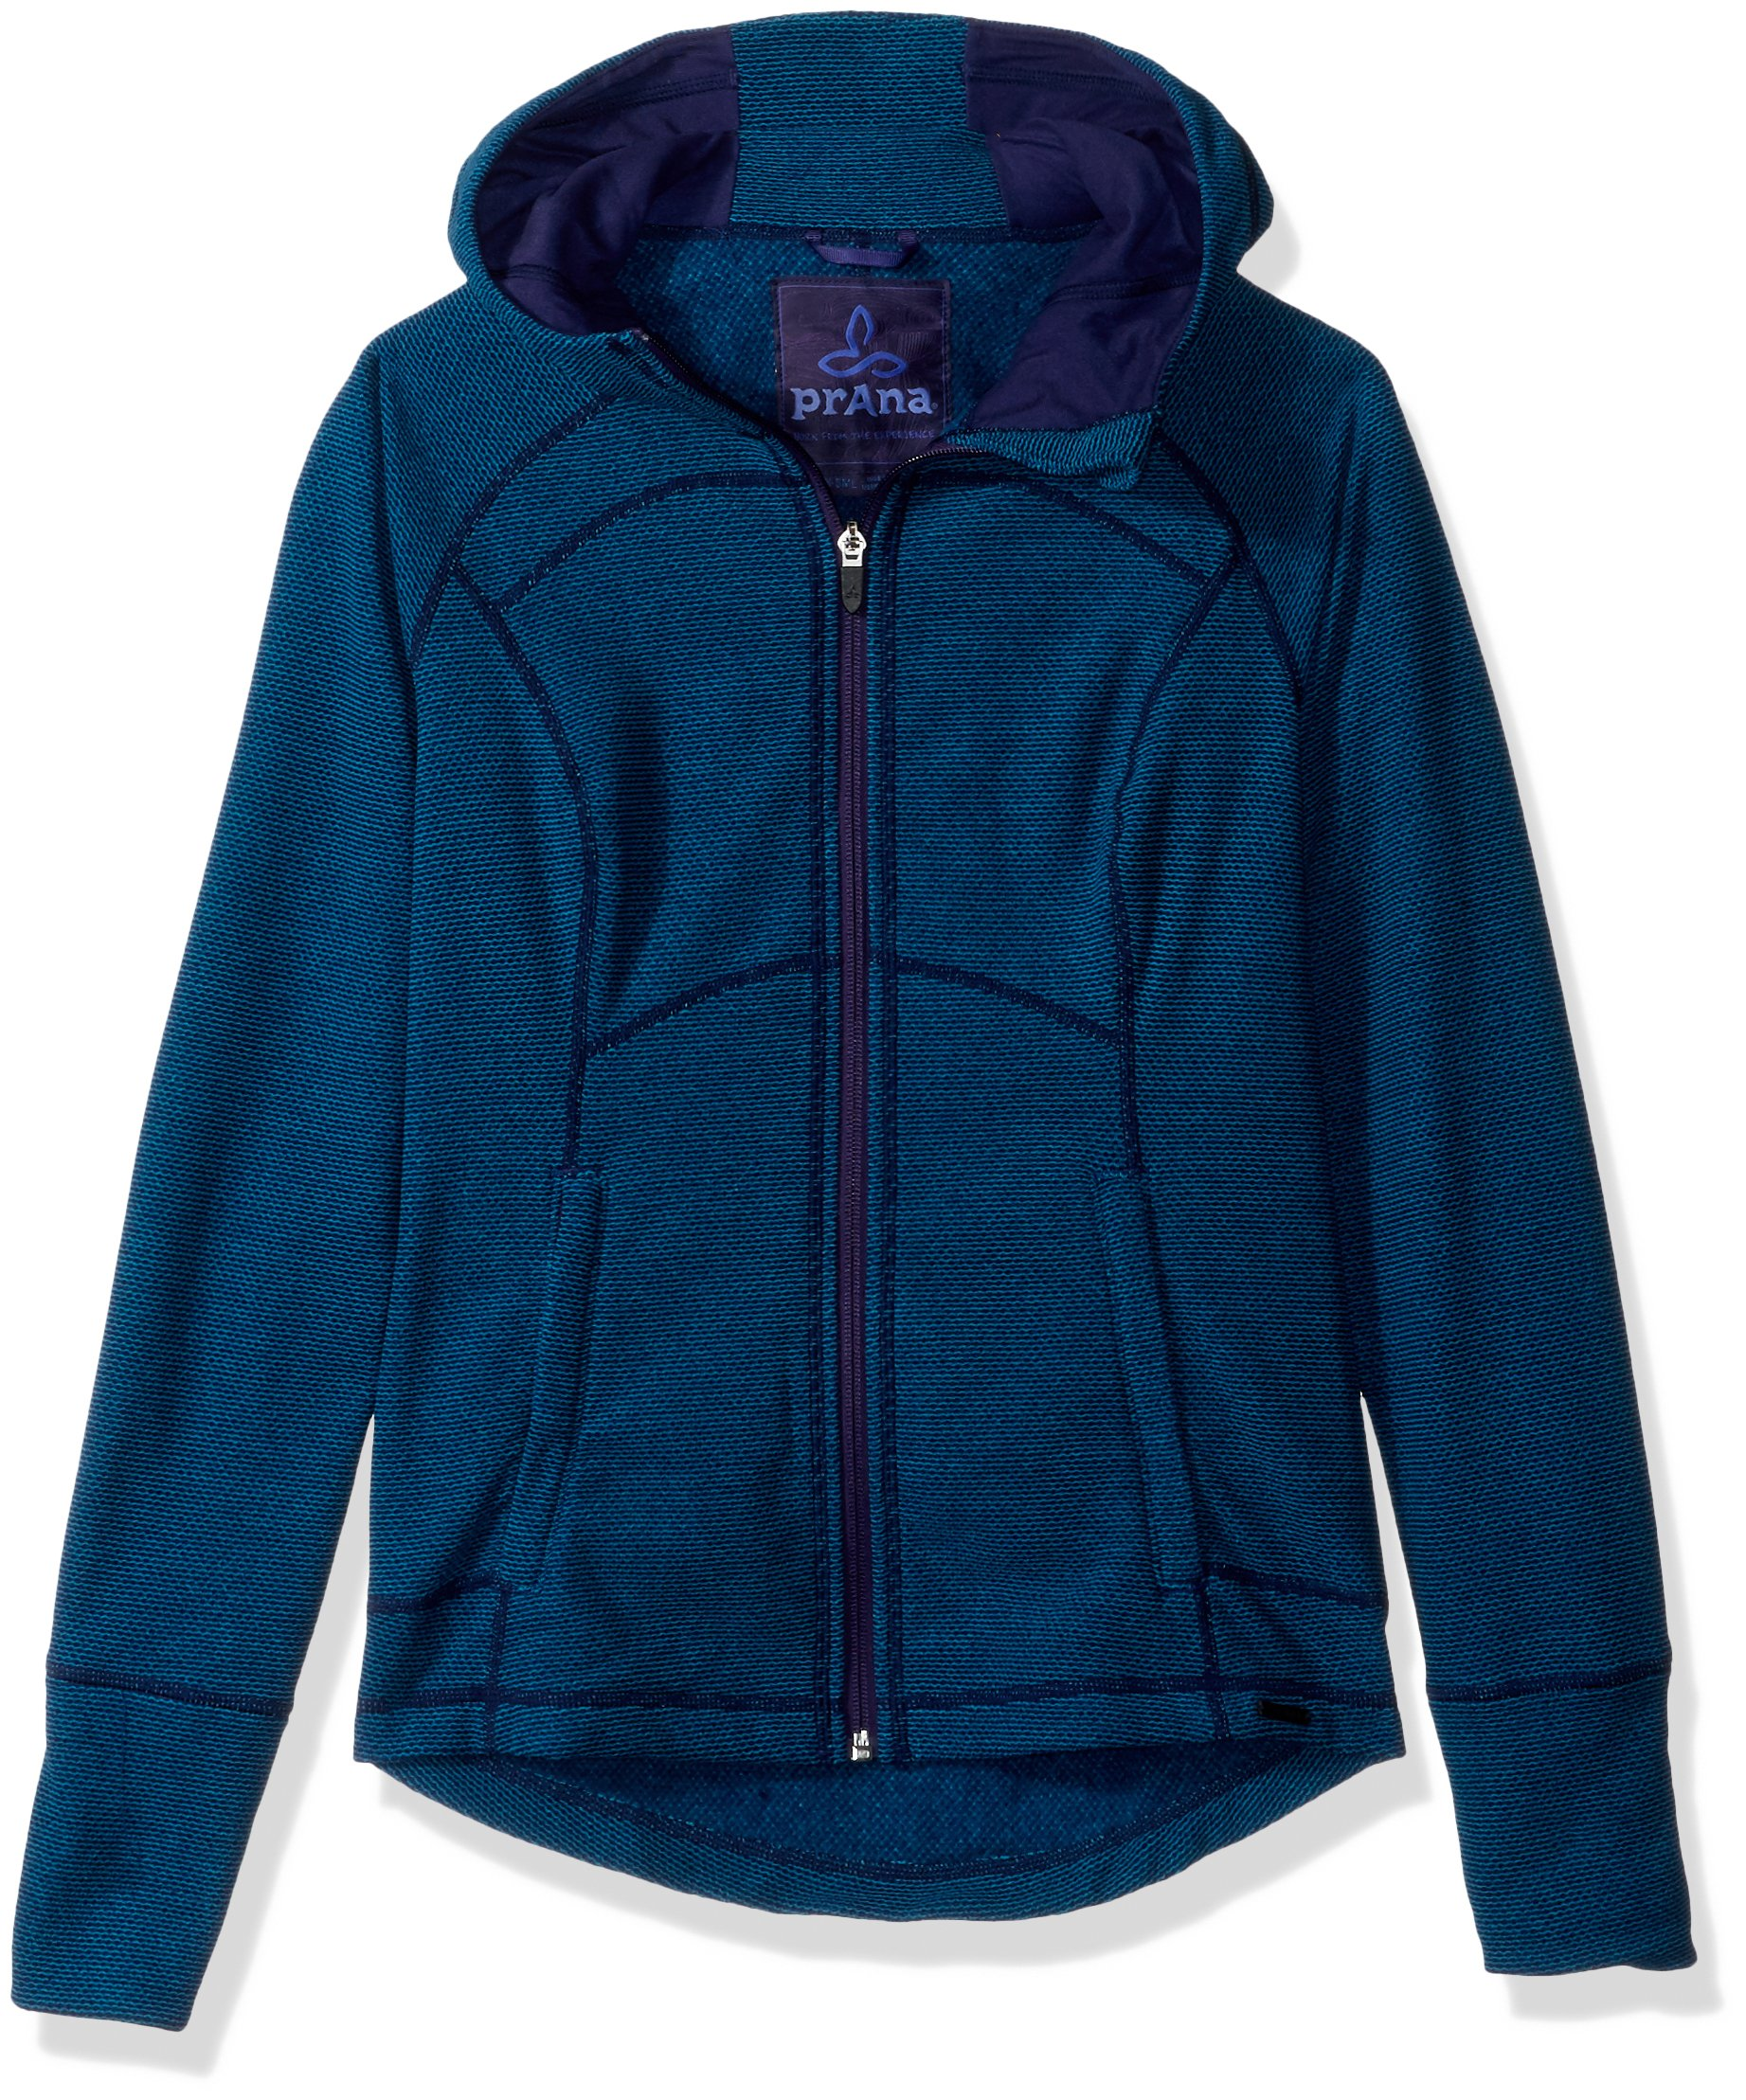 prAna Women's Rockaway Jacket, Cast Blue, X-Small